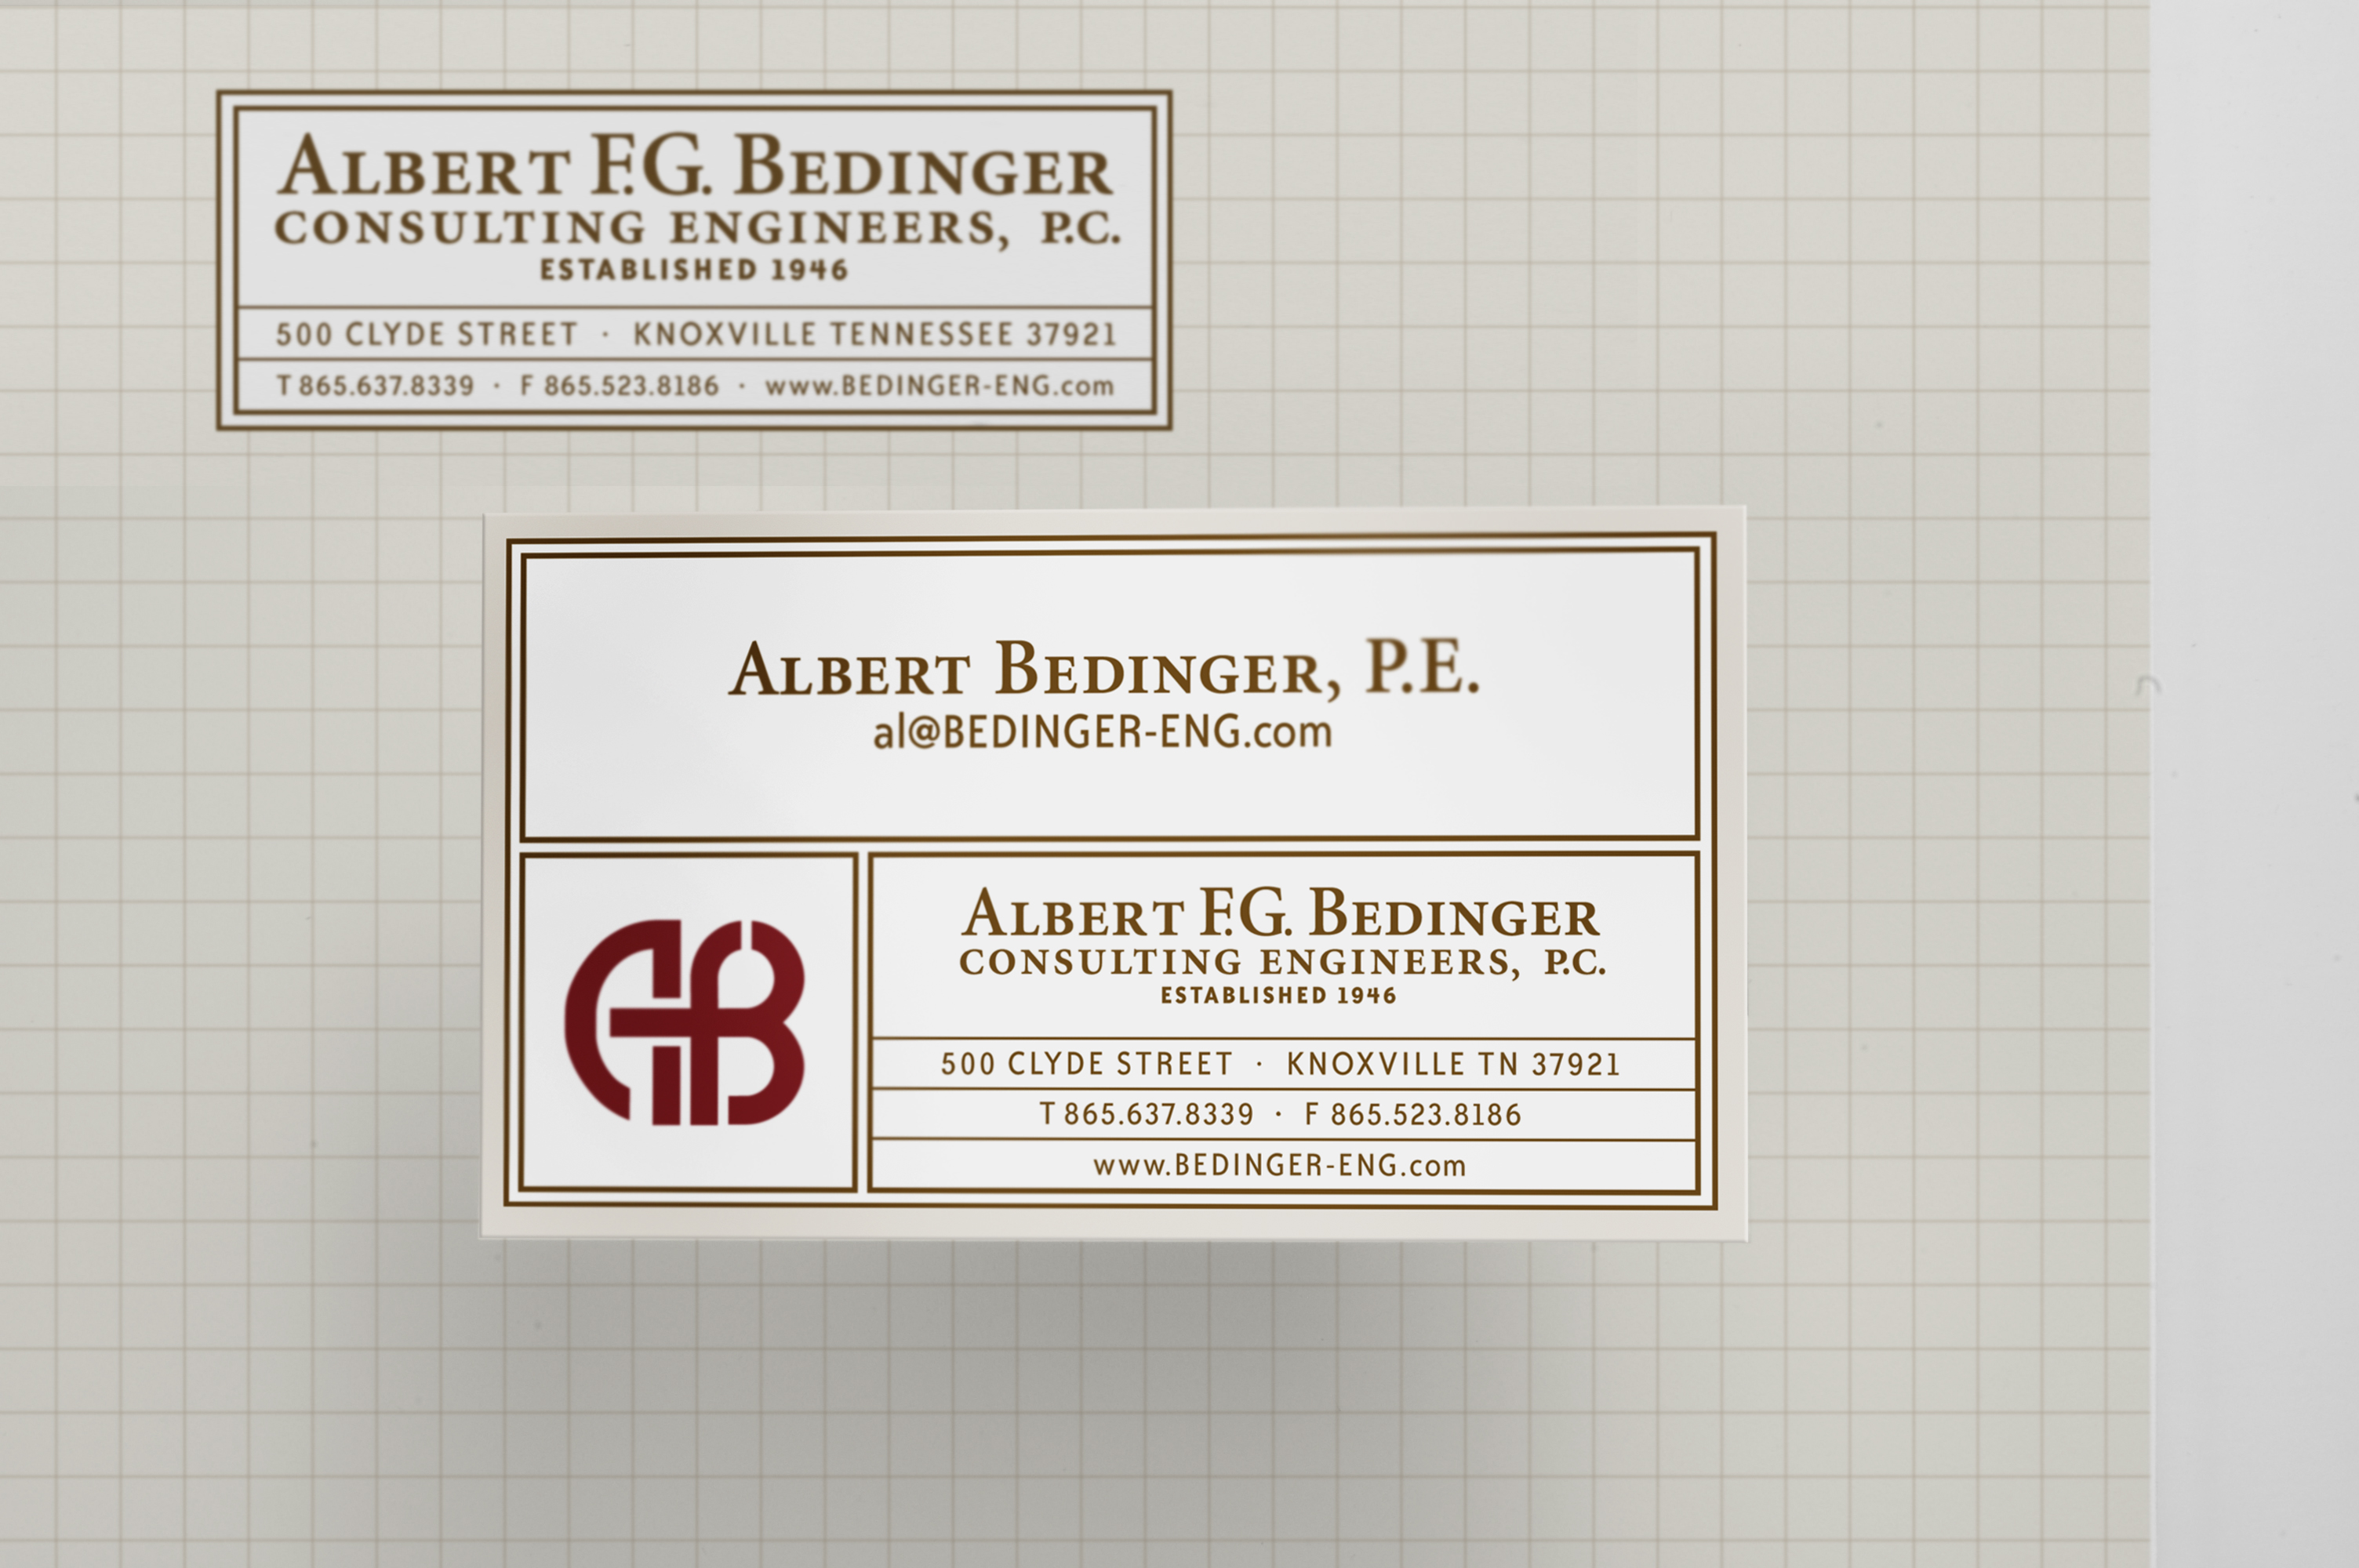 abc bizcards Albert F.G. Bedinger Consulting Engineers, P.C.